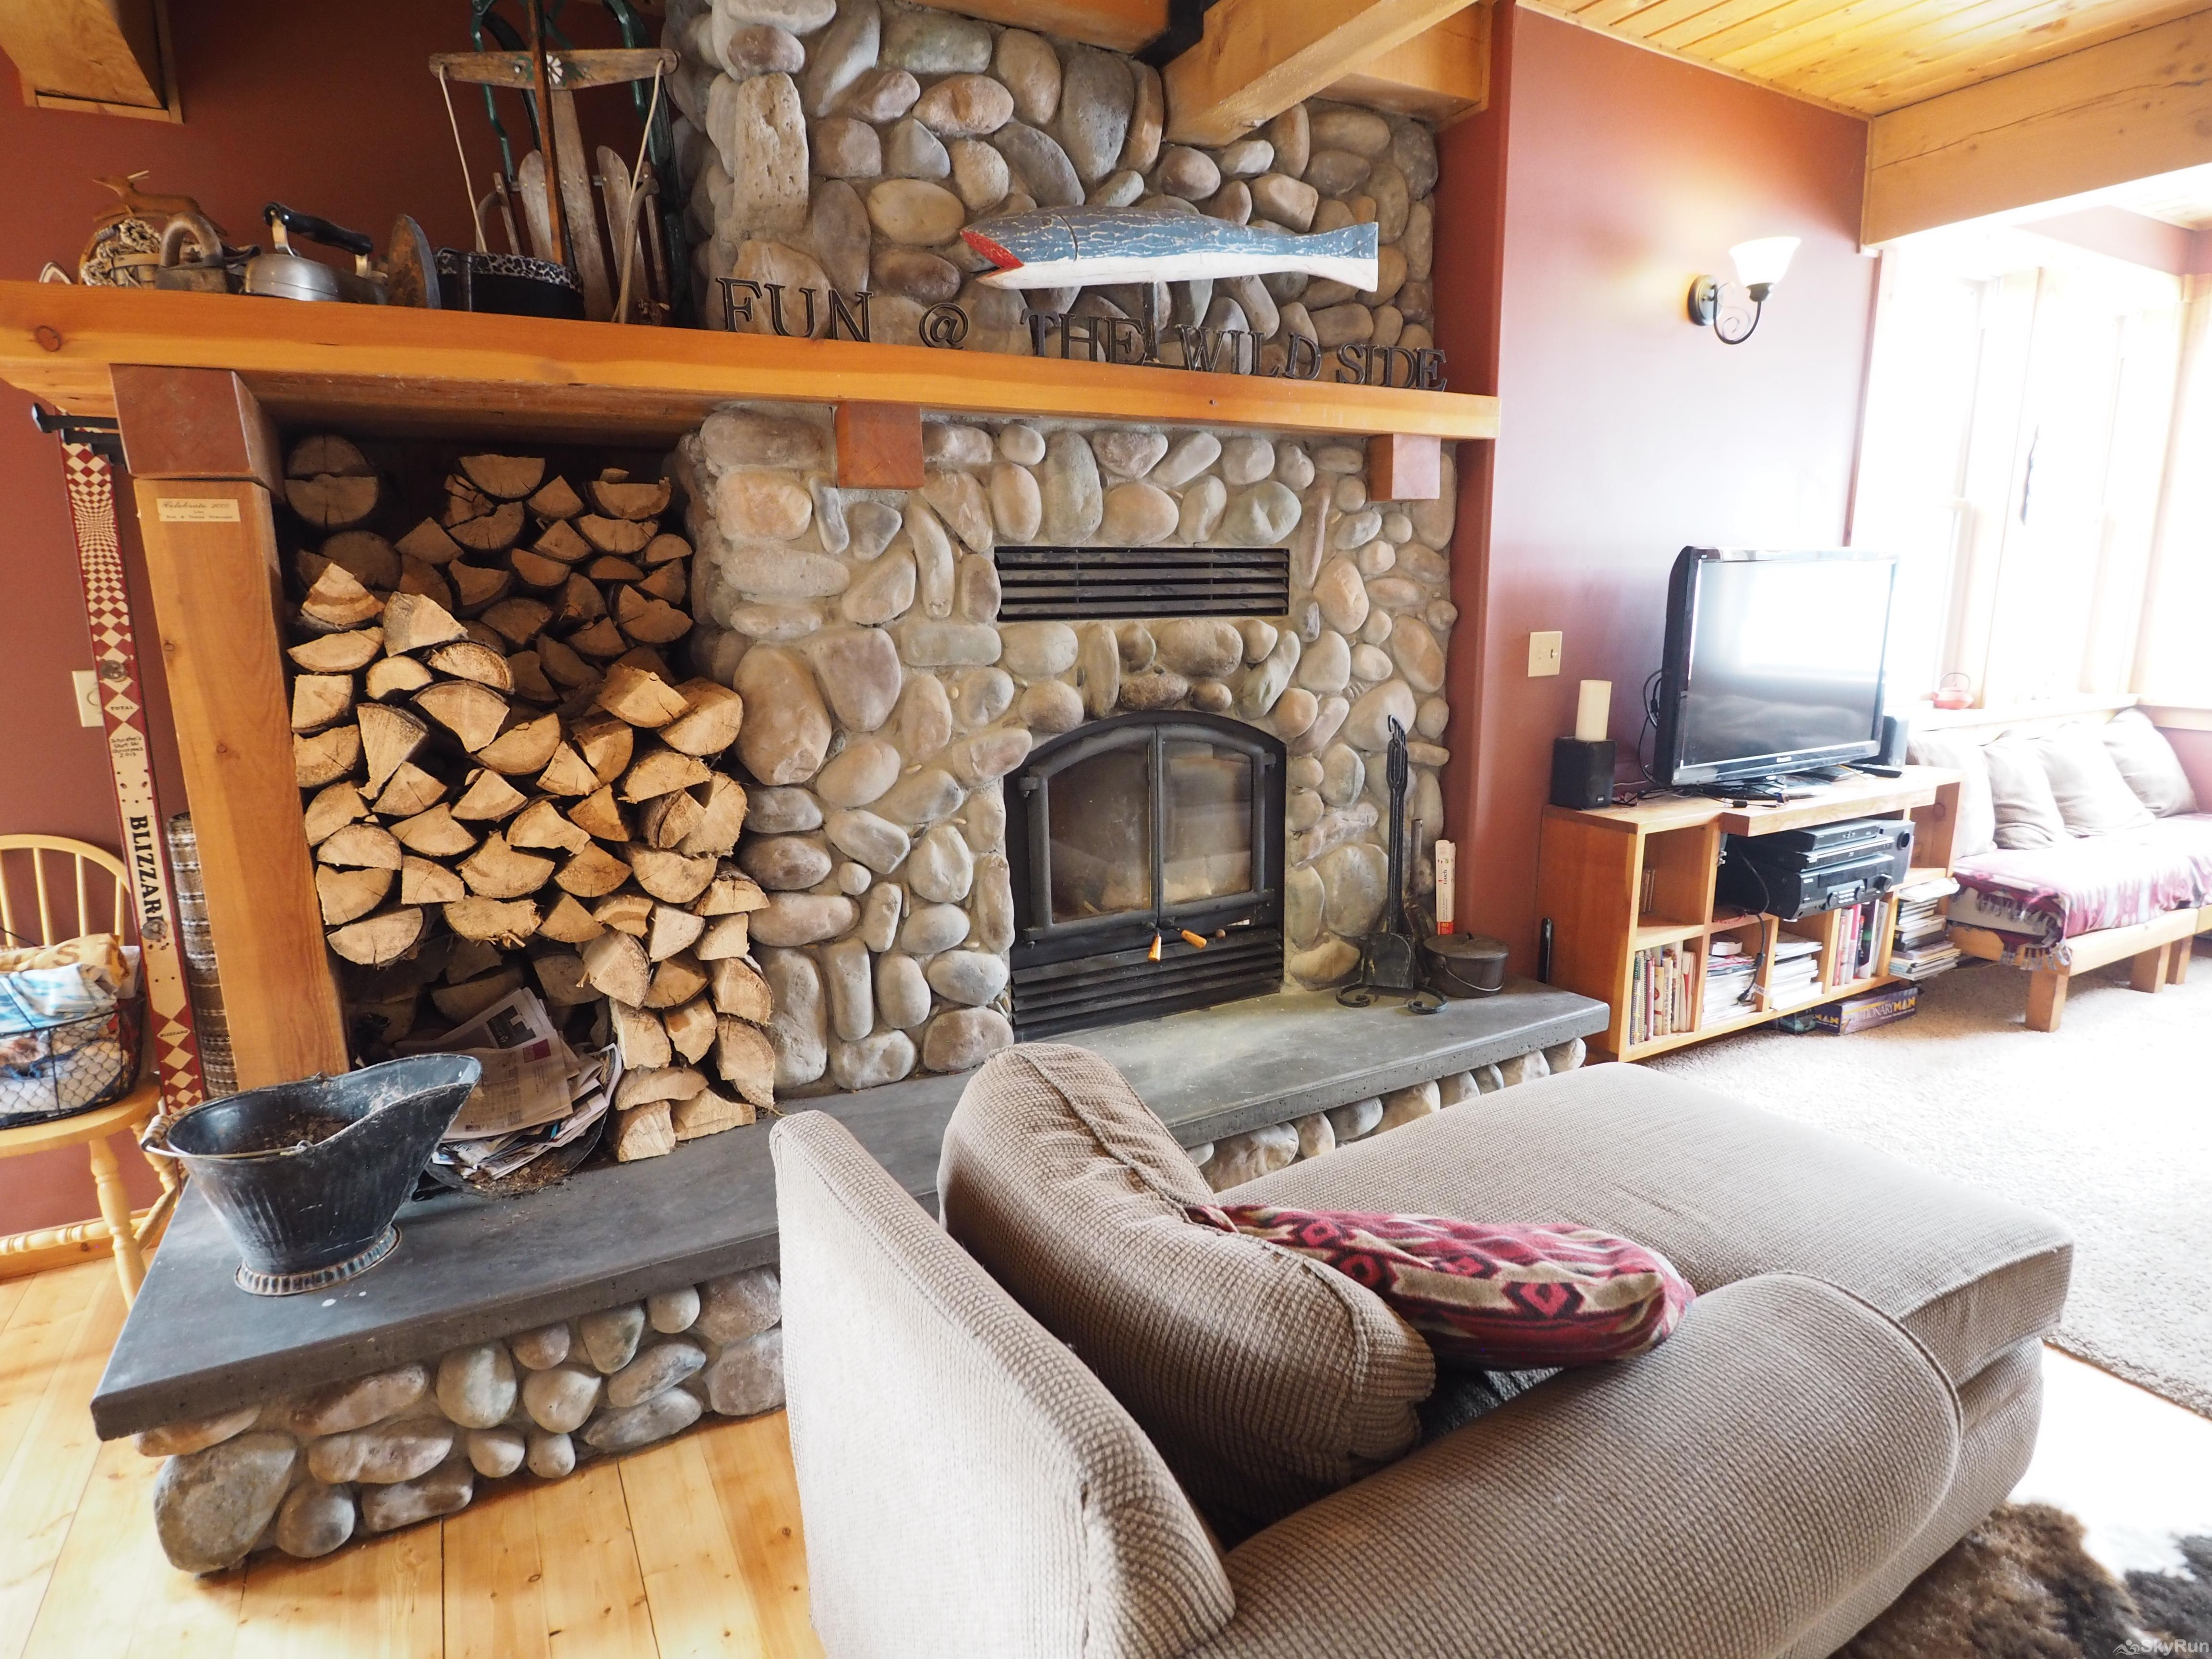 Wildside at Apex The comfortable lounge room provides amazing views of the ski hill and a wood burning fireplace